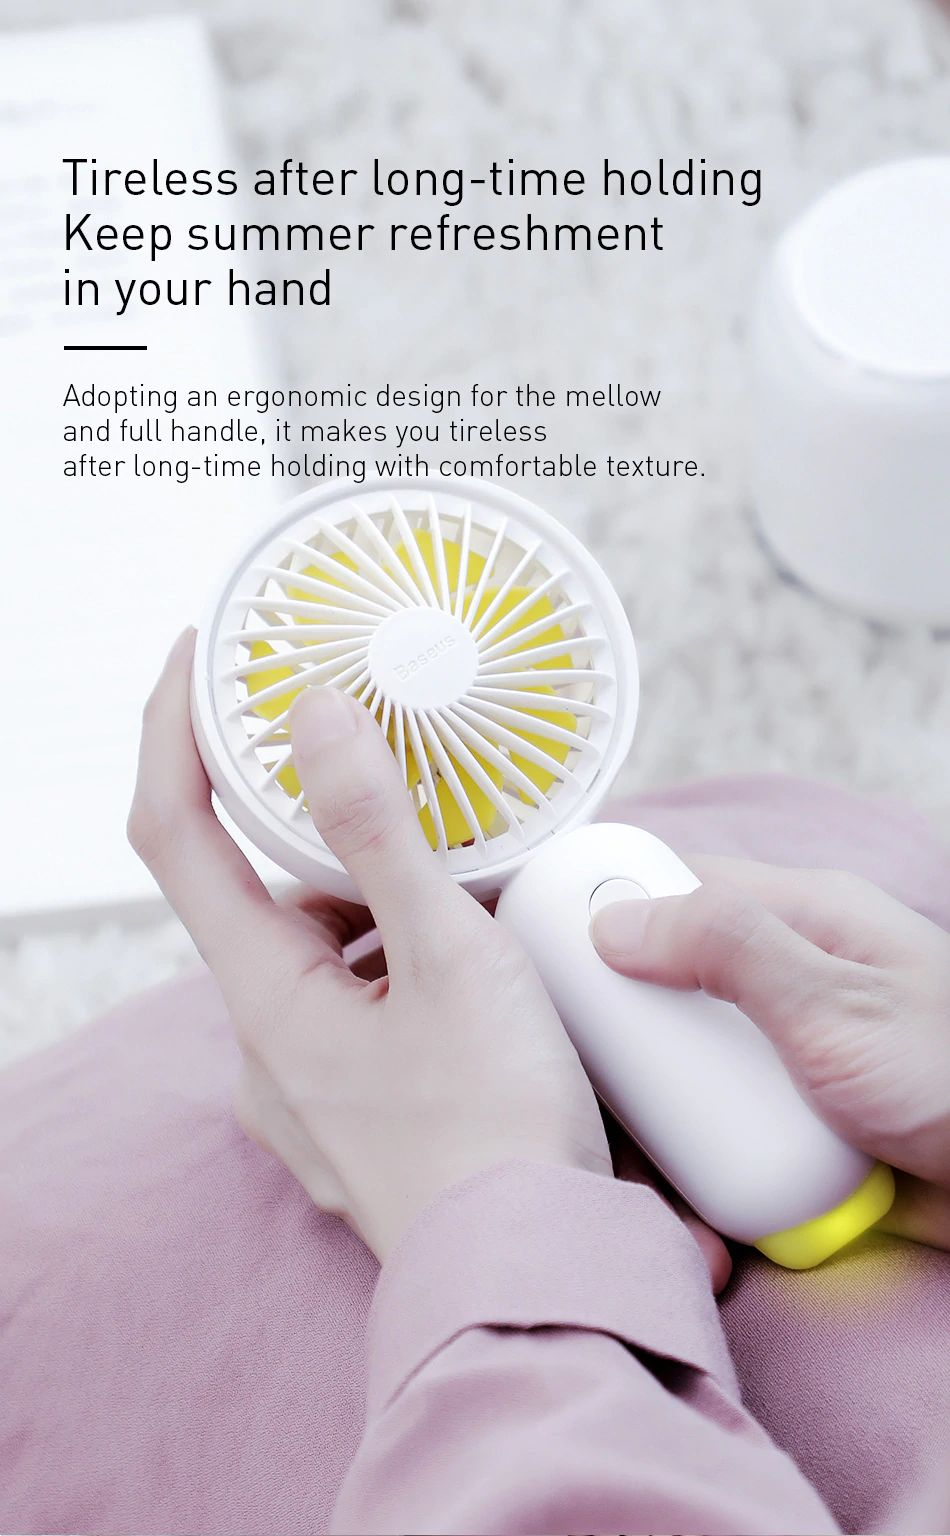 Baseus Firefly Mini Fan 1500mah Rechargeable Usb Fan (2)